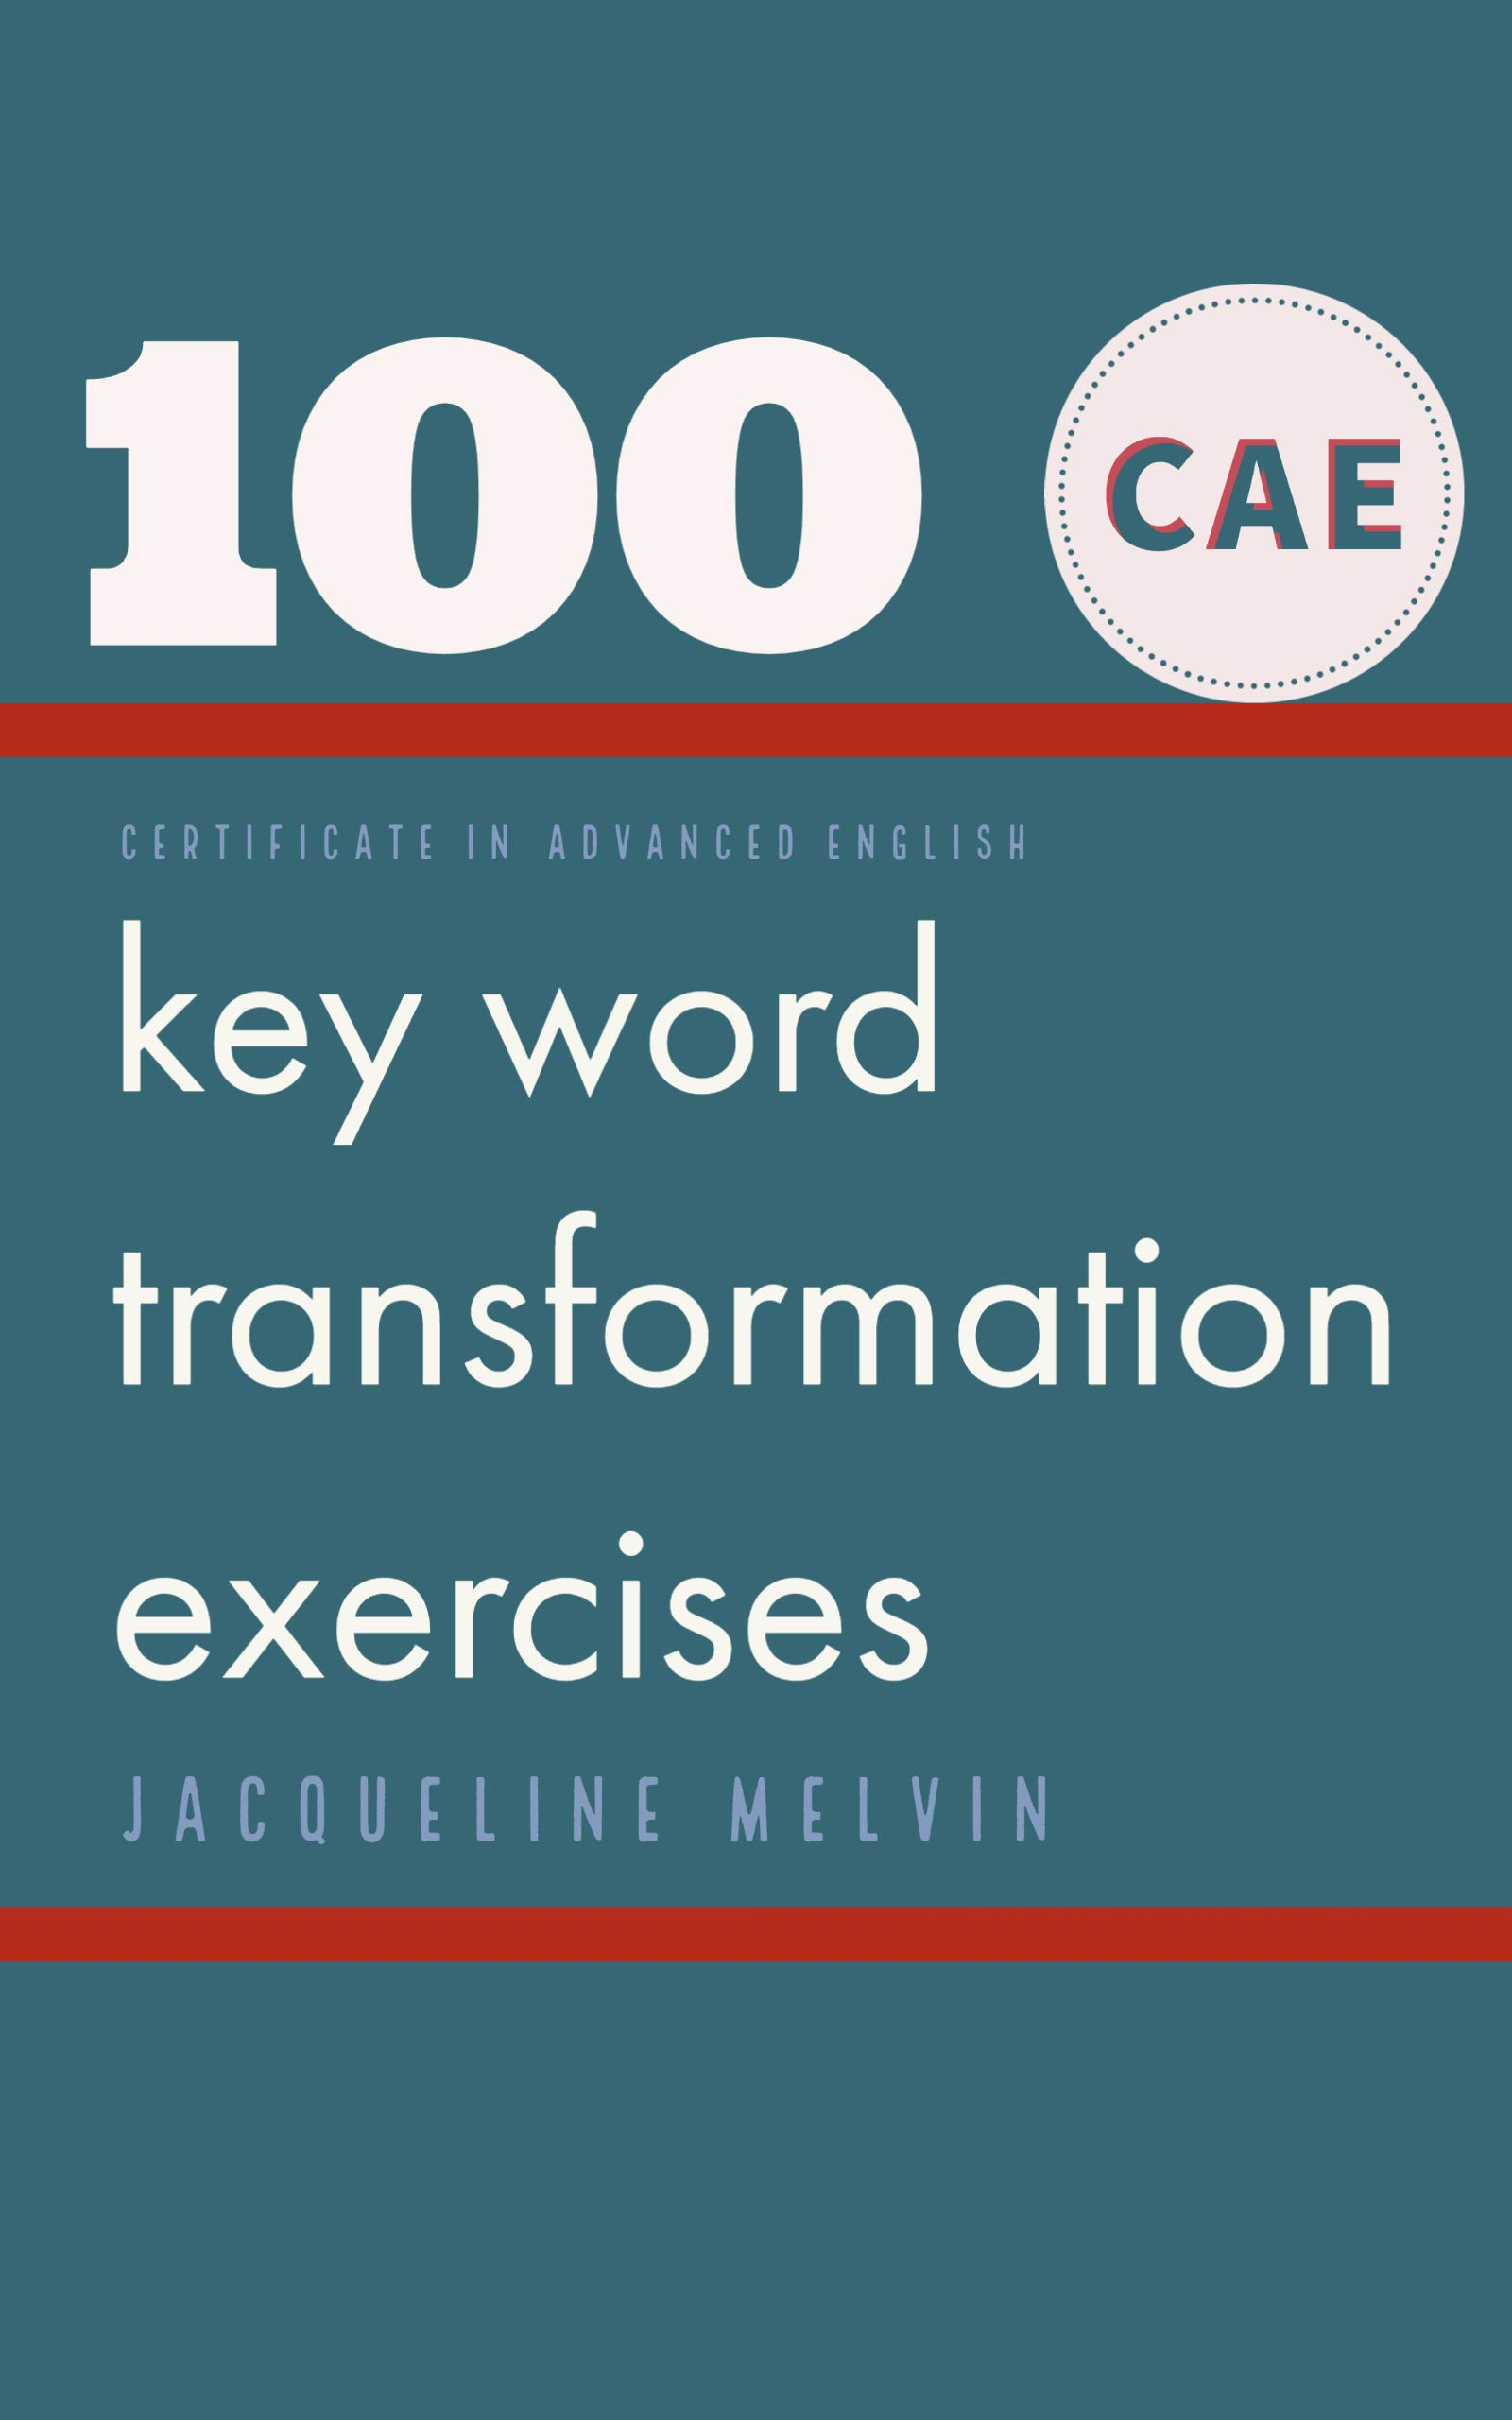 CERTIFICATE IN ADVANCED ENGLISH: 100   CAE Key Word Transformation Exercises por Jacqueline Melvin